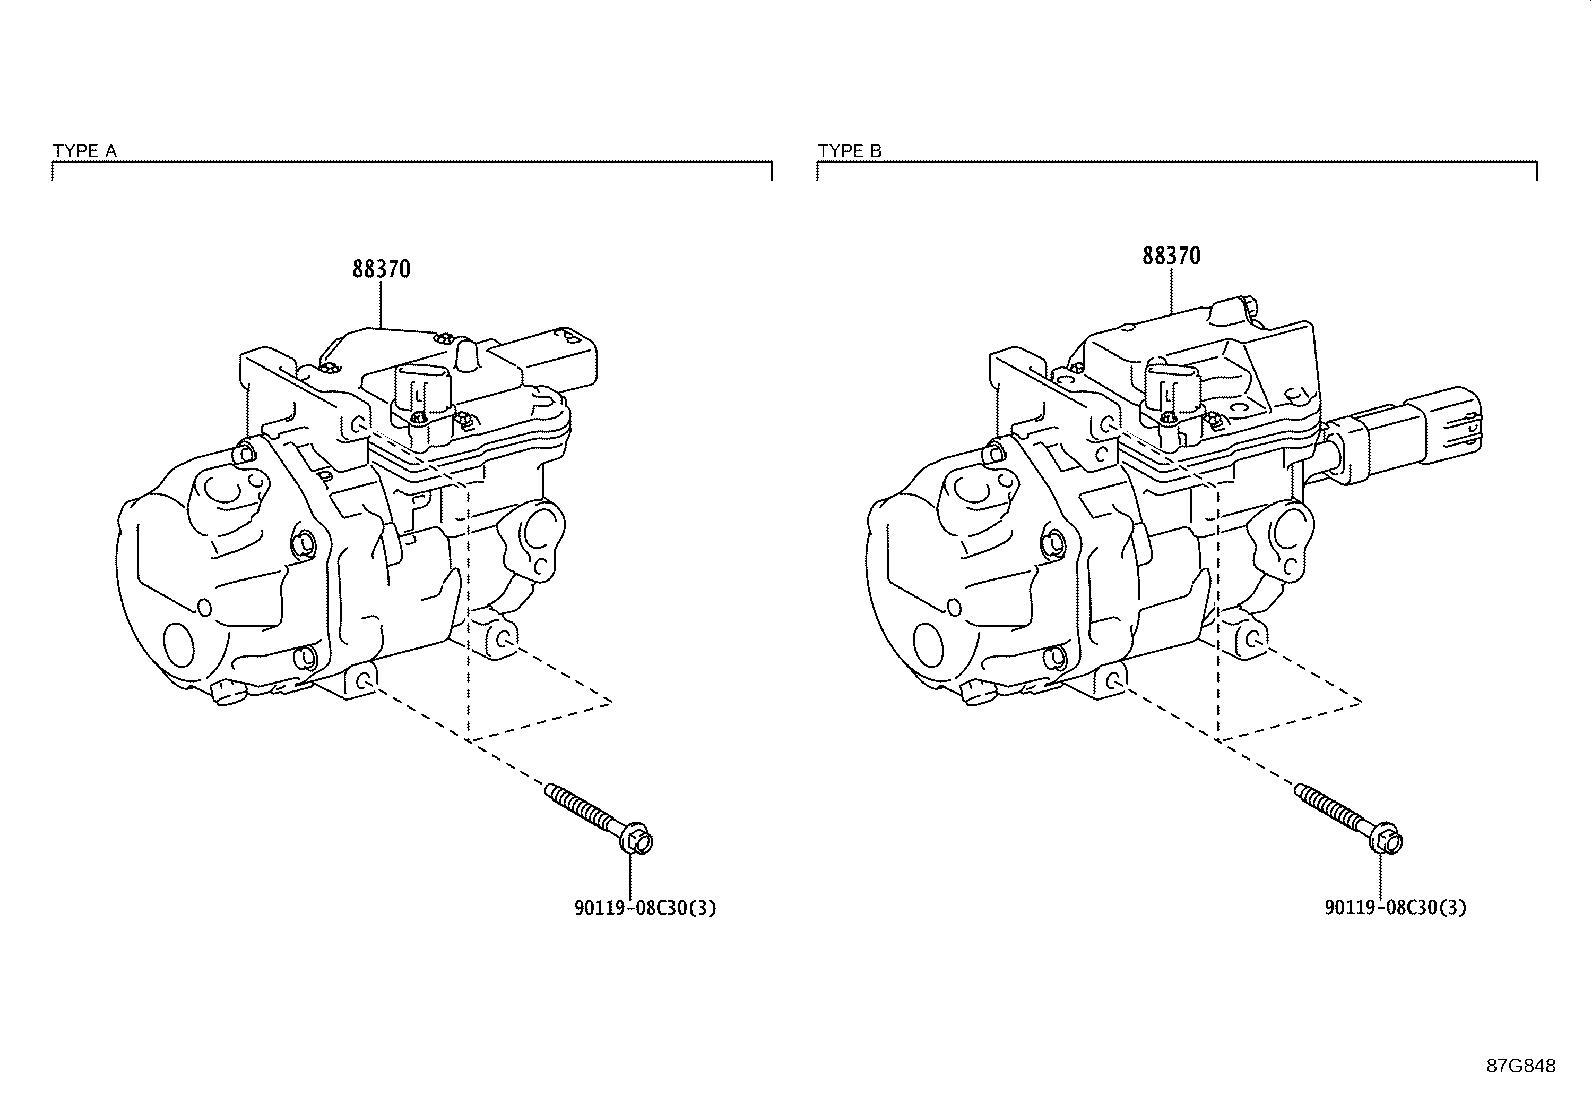 Toyota Prius Compressor Assembly With Motor